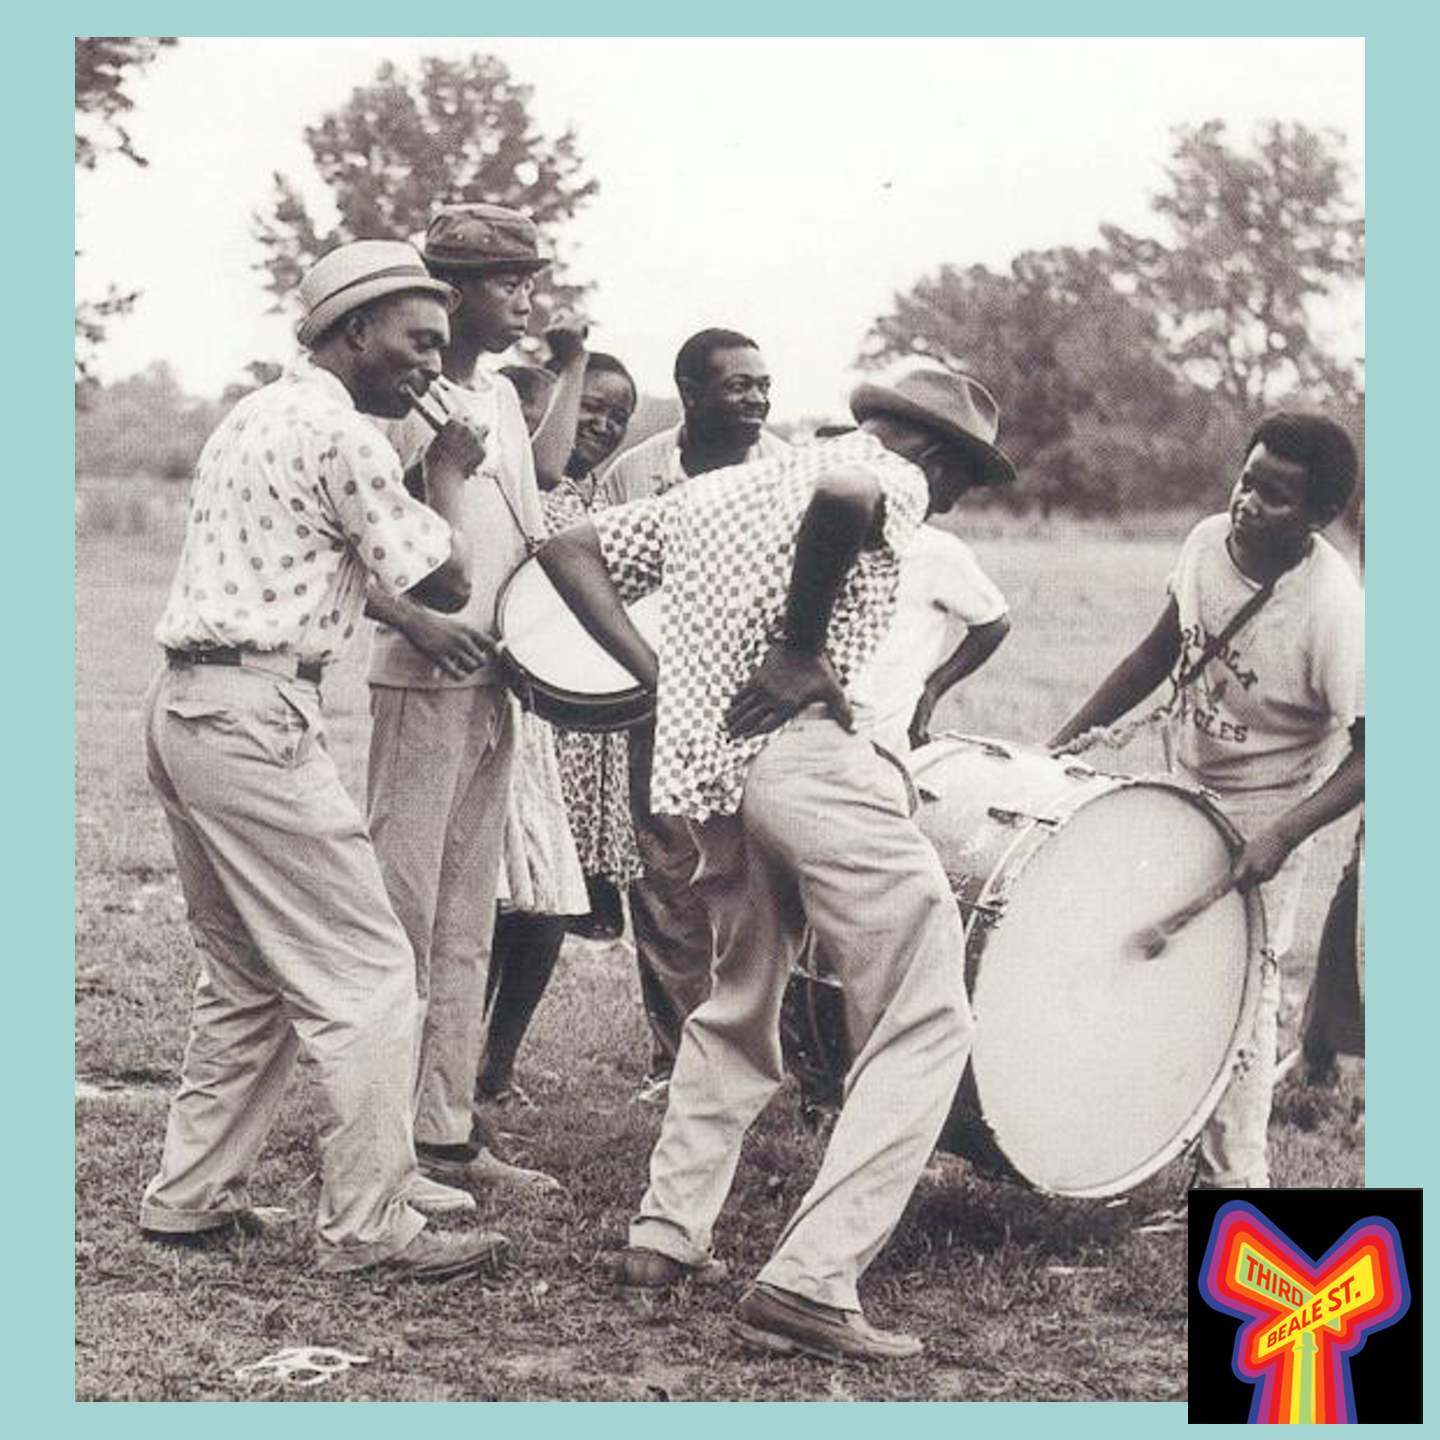 Caption: Napoleon Strickland on fife, Jimmie Buford on bass drum, R.L. Boyce on snare drum, and Othar Turner dancing. Photo by David Evans.